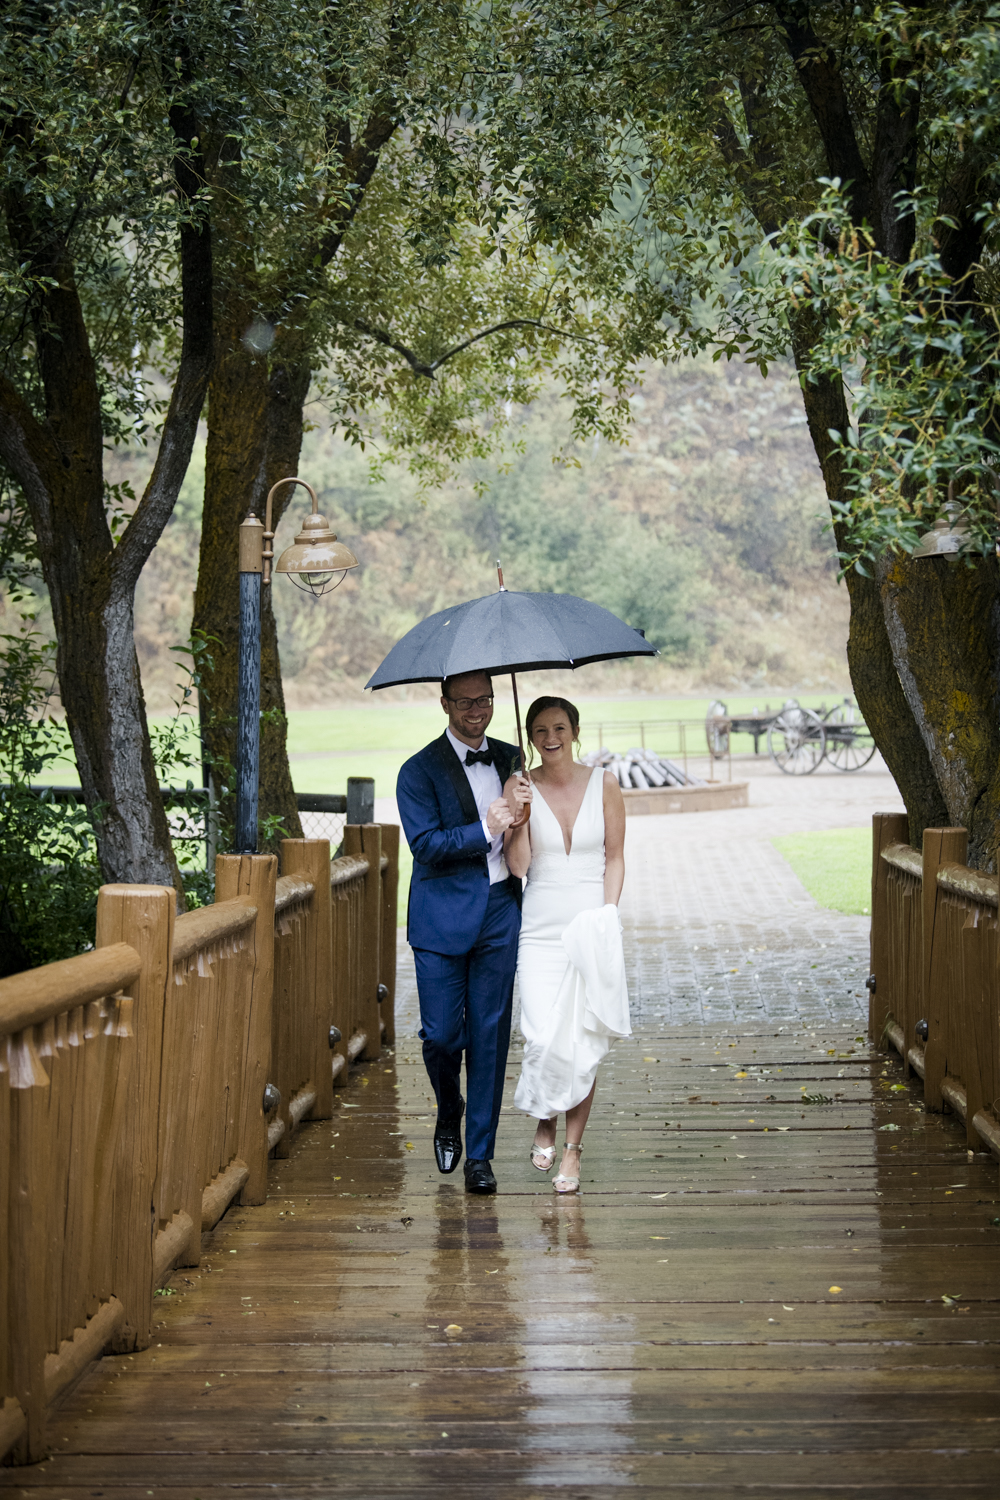 trailcreek_rainy_wedding-019.jpg